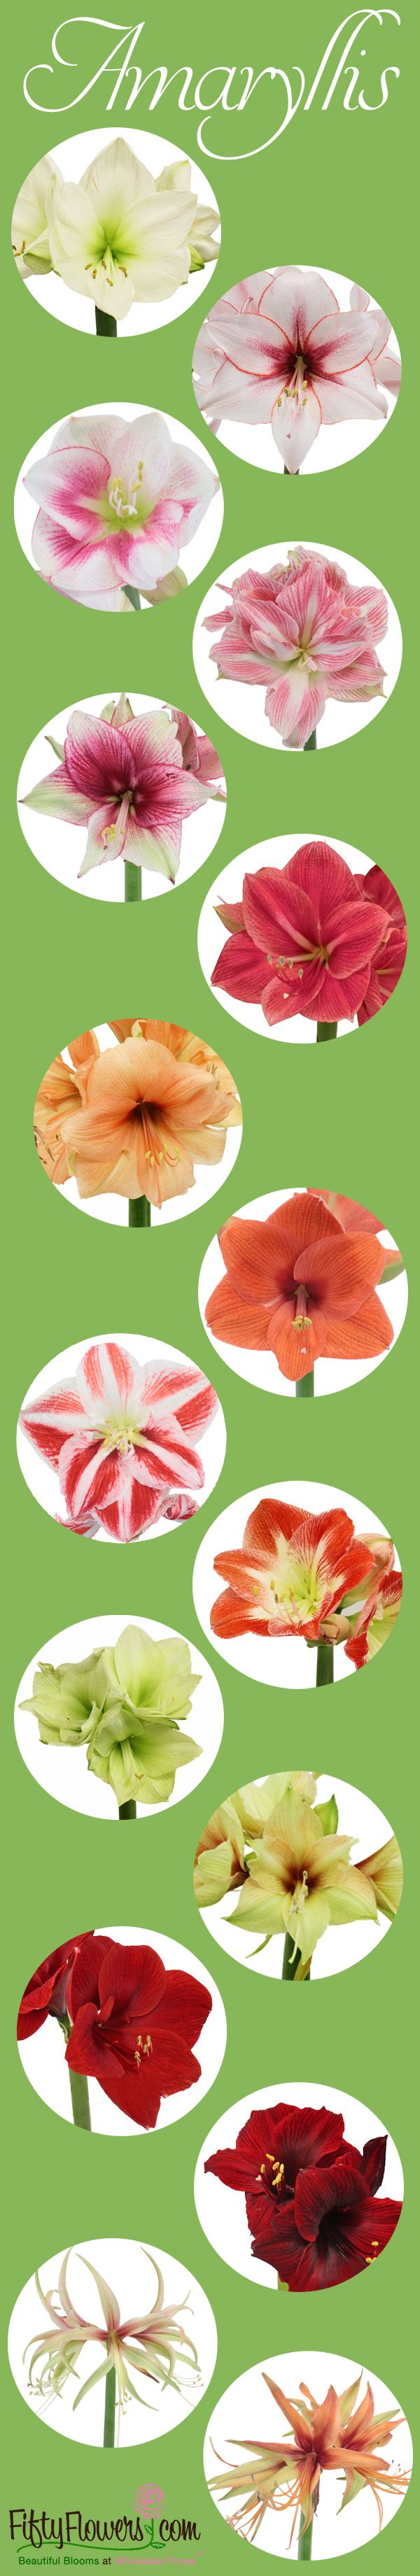 New Varieties and Lower Prices on our Fresh Amaryllis Flowers! Perfect for the…